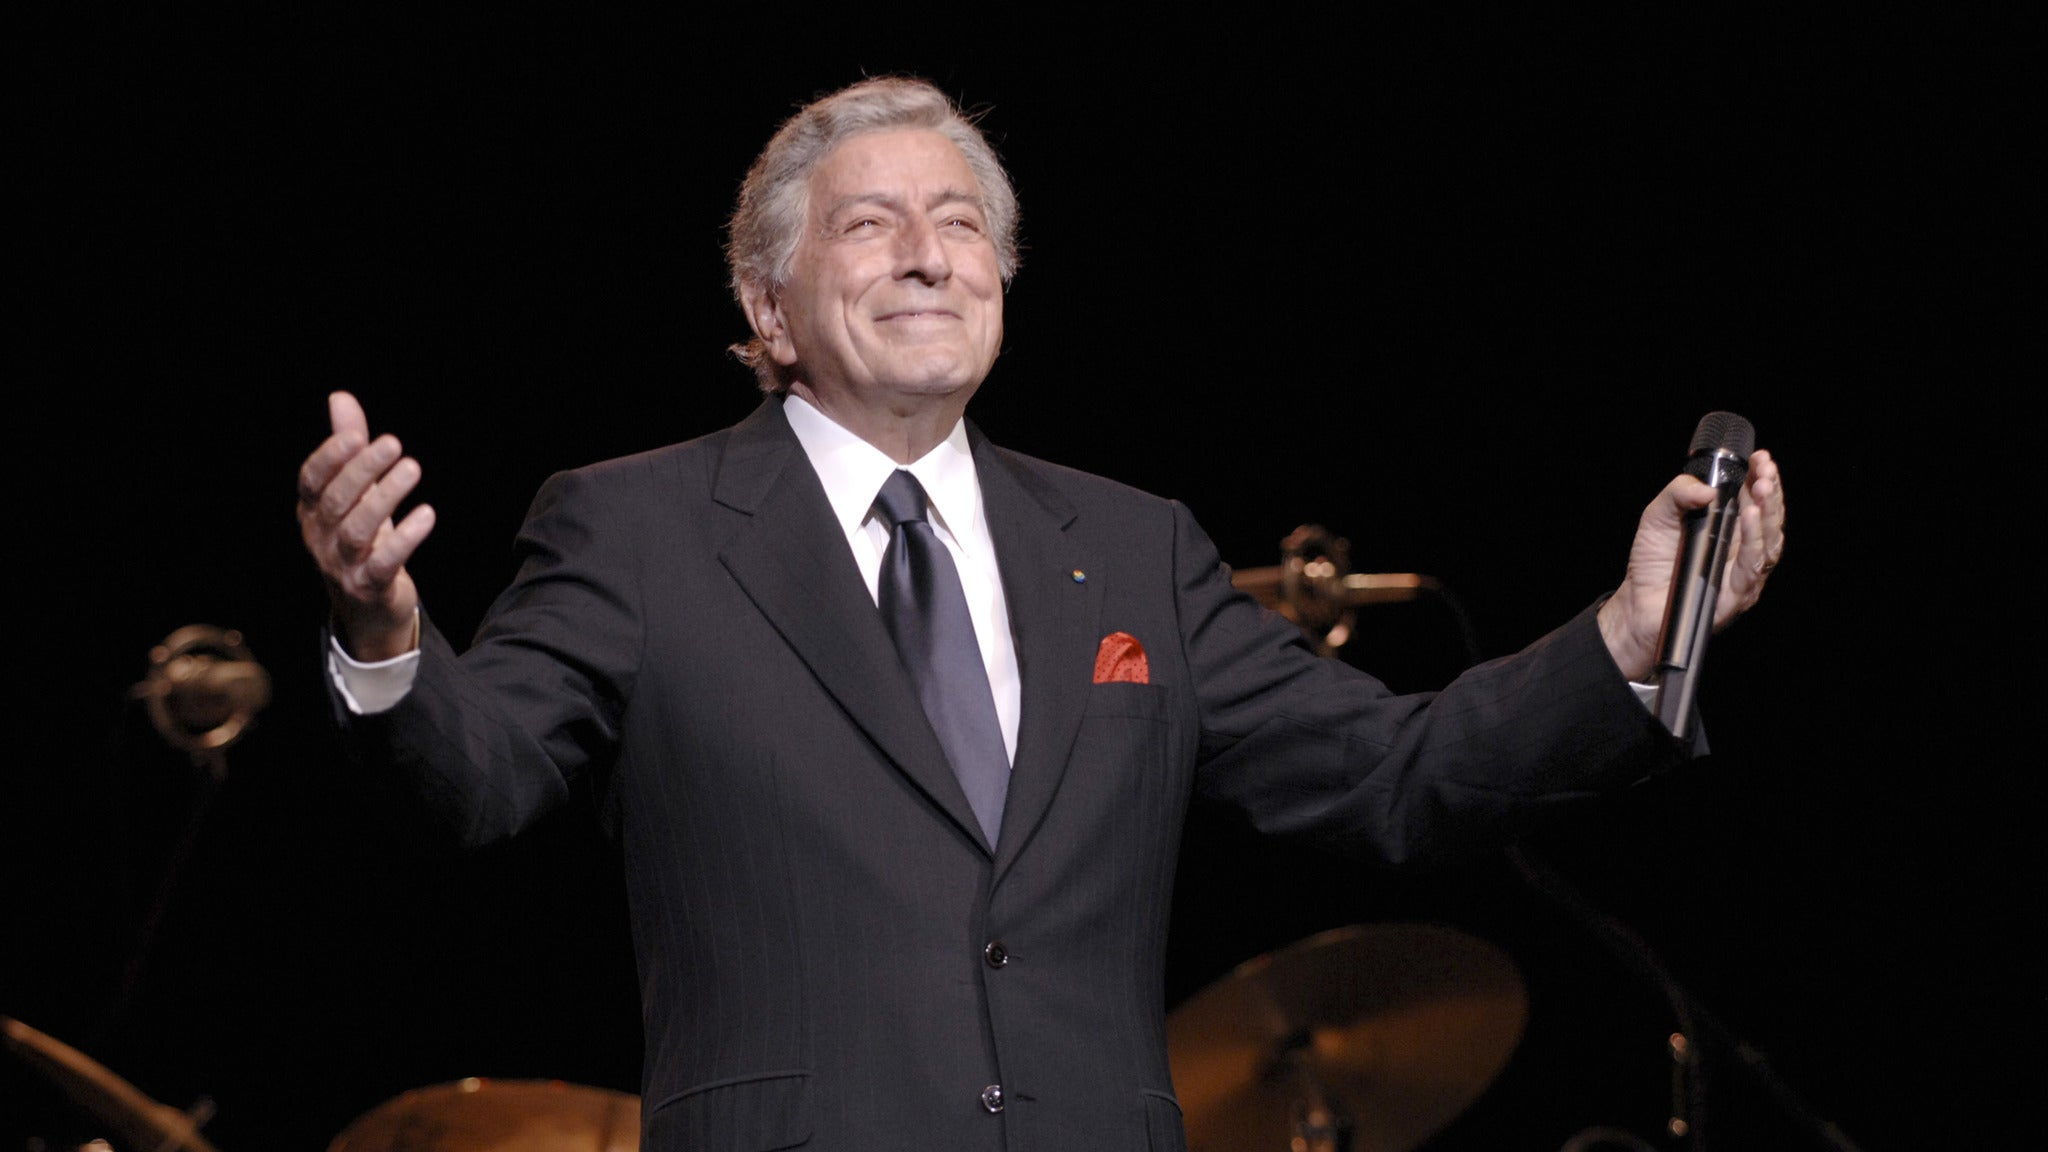 Tony Bennett at The Grand Theater at Foxwoods Resort Casino - Mashantucket, CT 06355